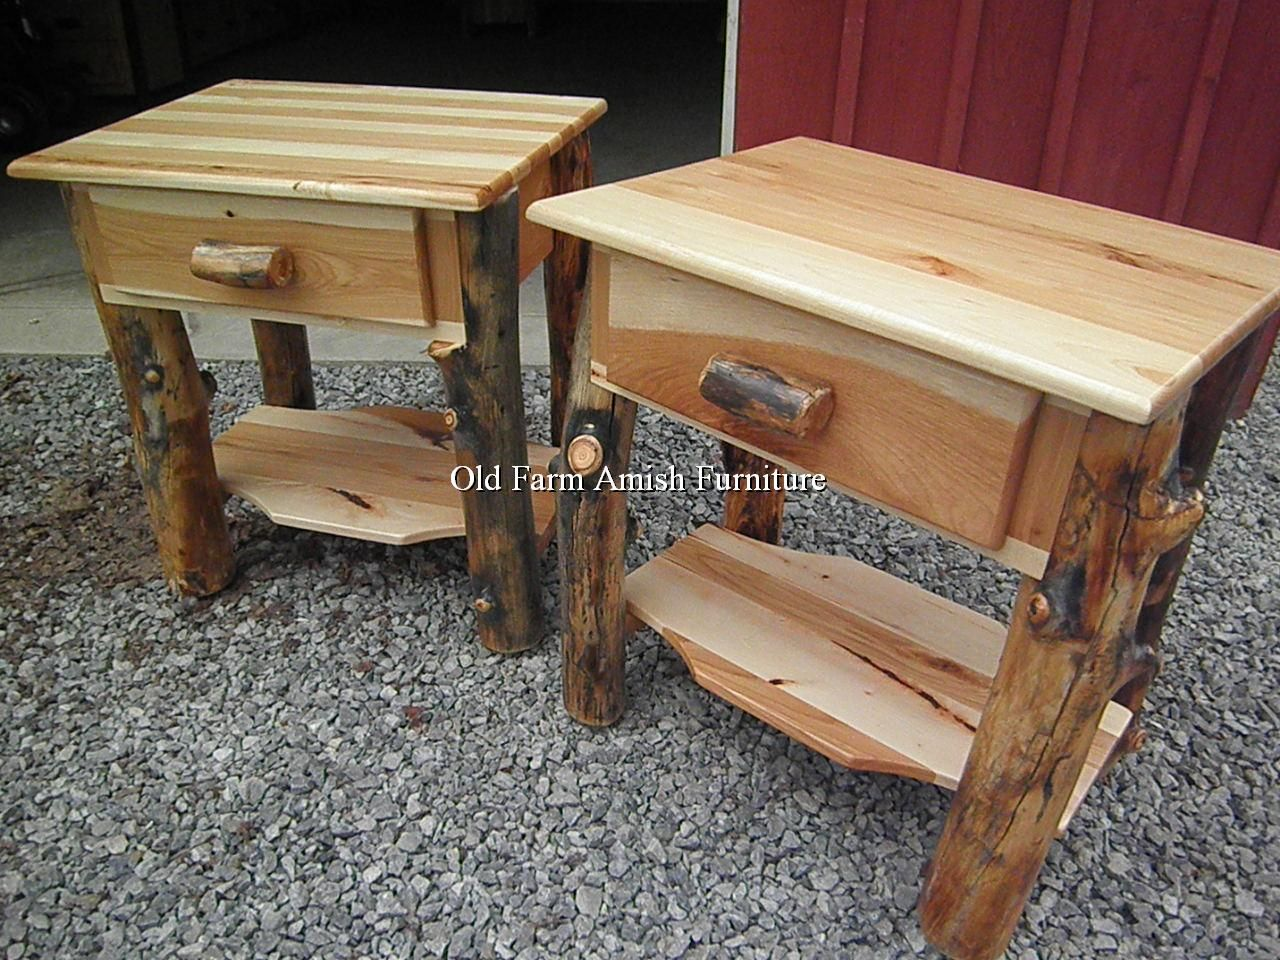 Exceptional Aspen Log Nightstands Old Farm Amish Furniture   Dayton, PA (814) 257